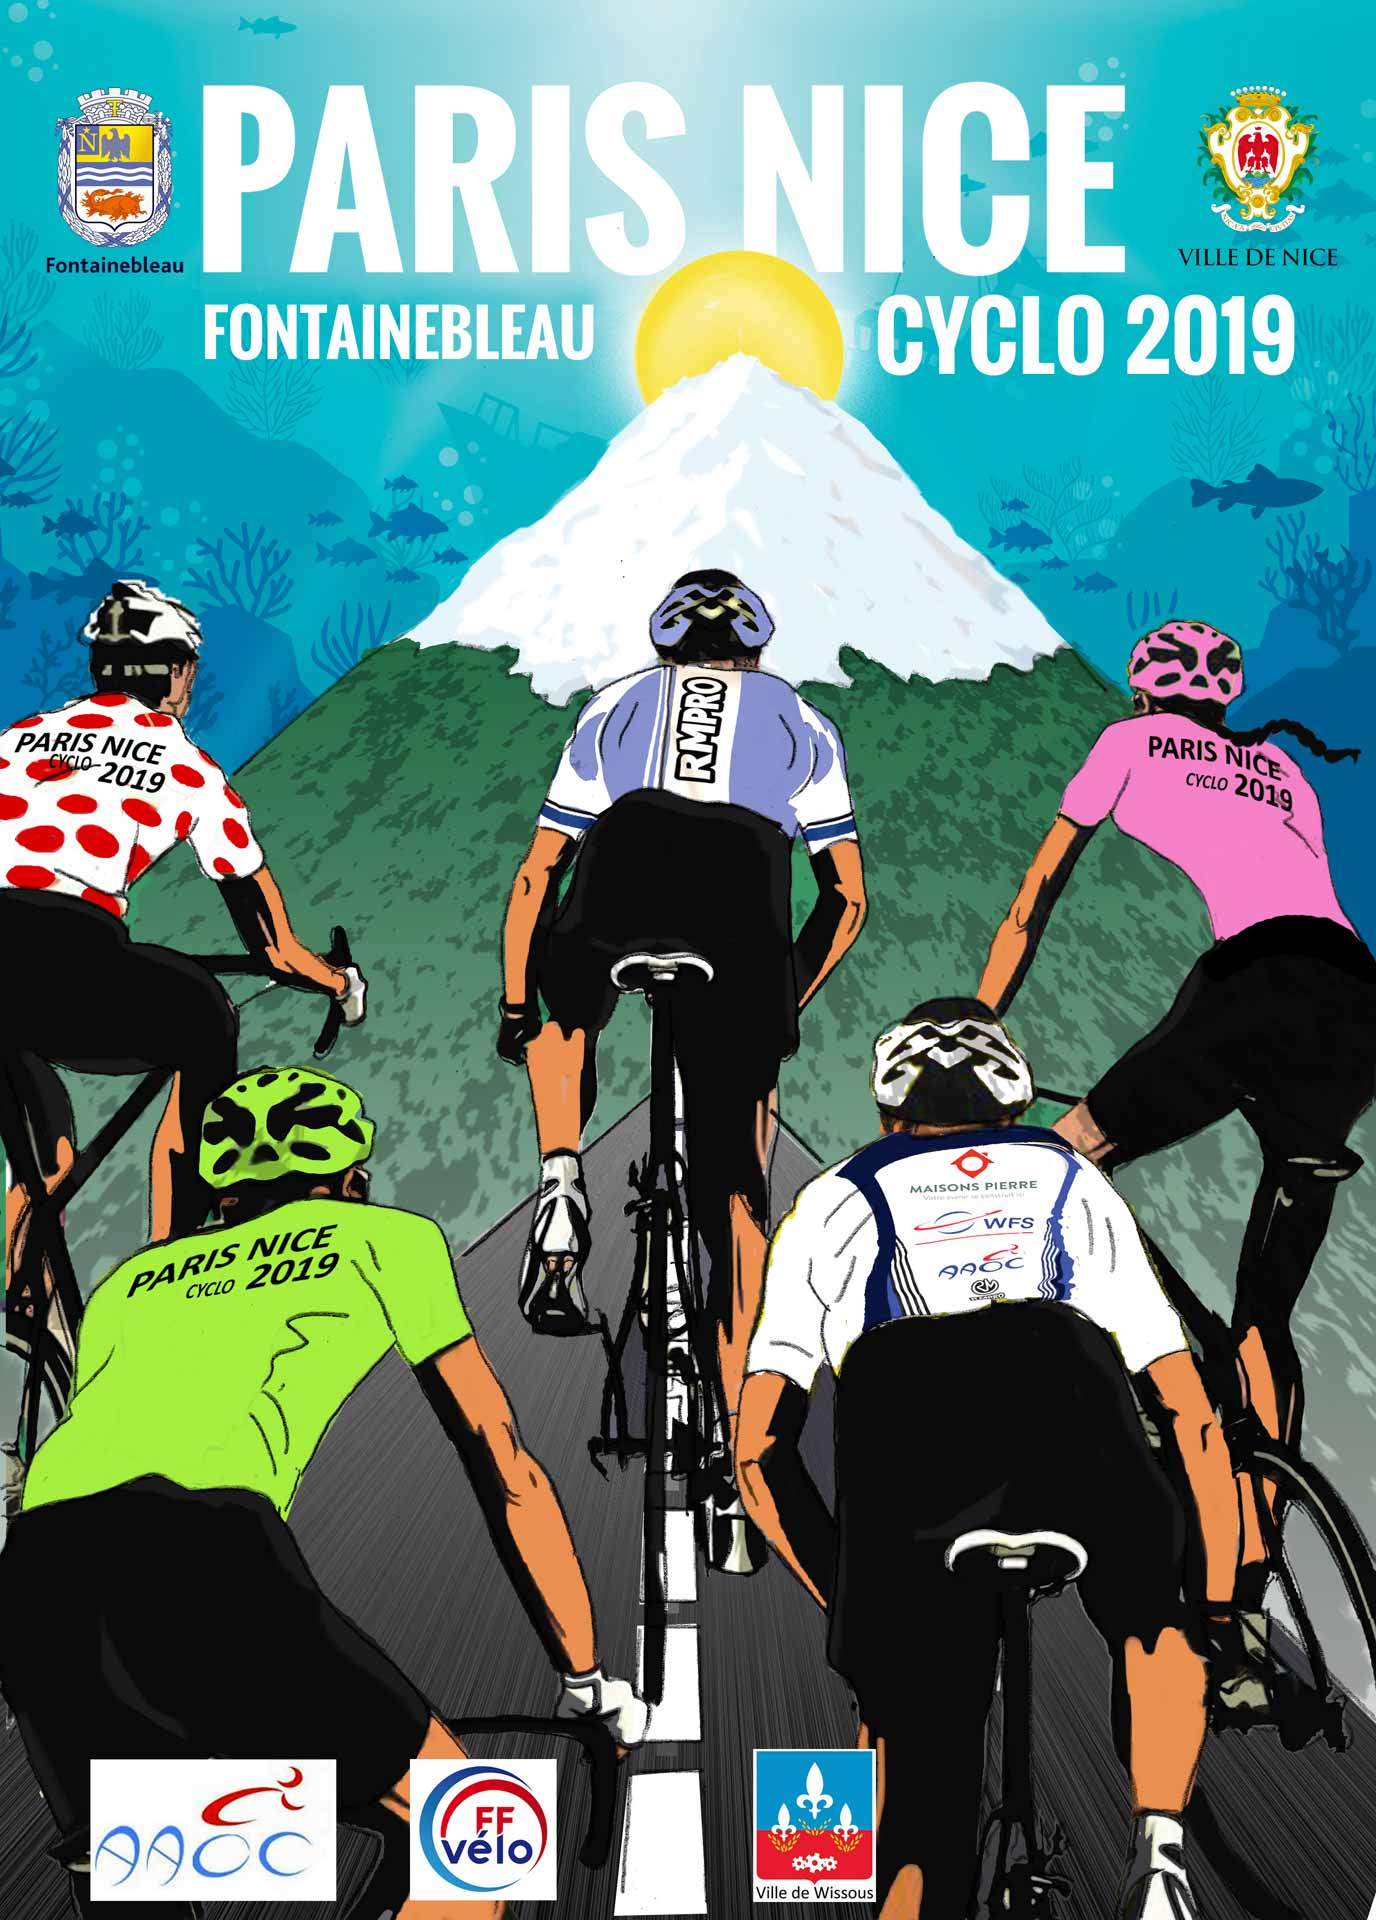 Affiche Paris Nice Cyclo 2019